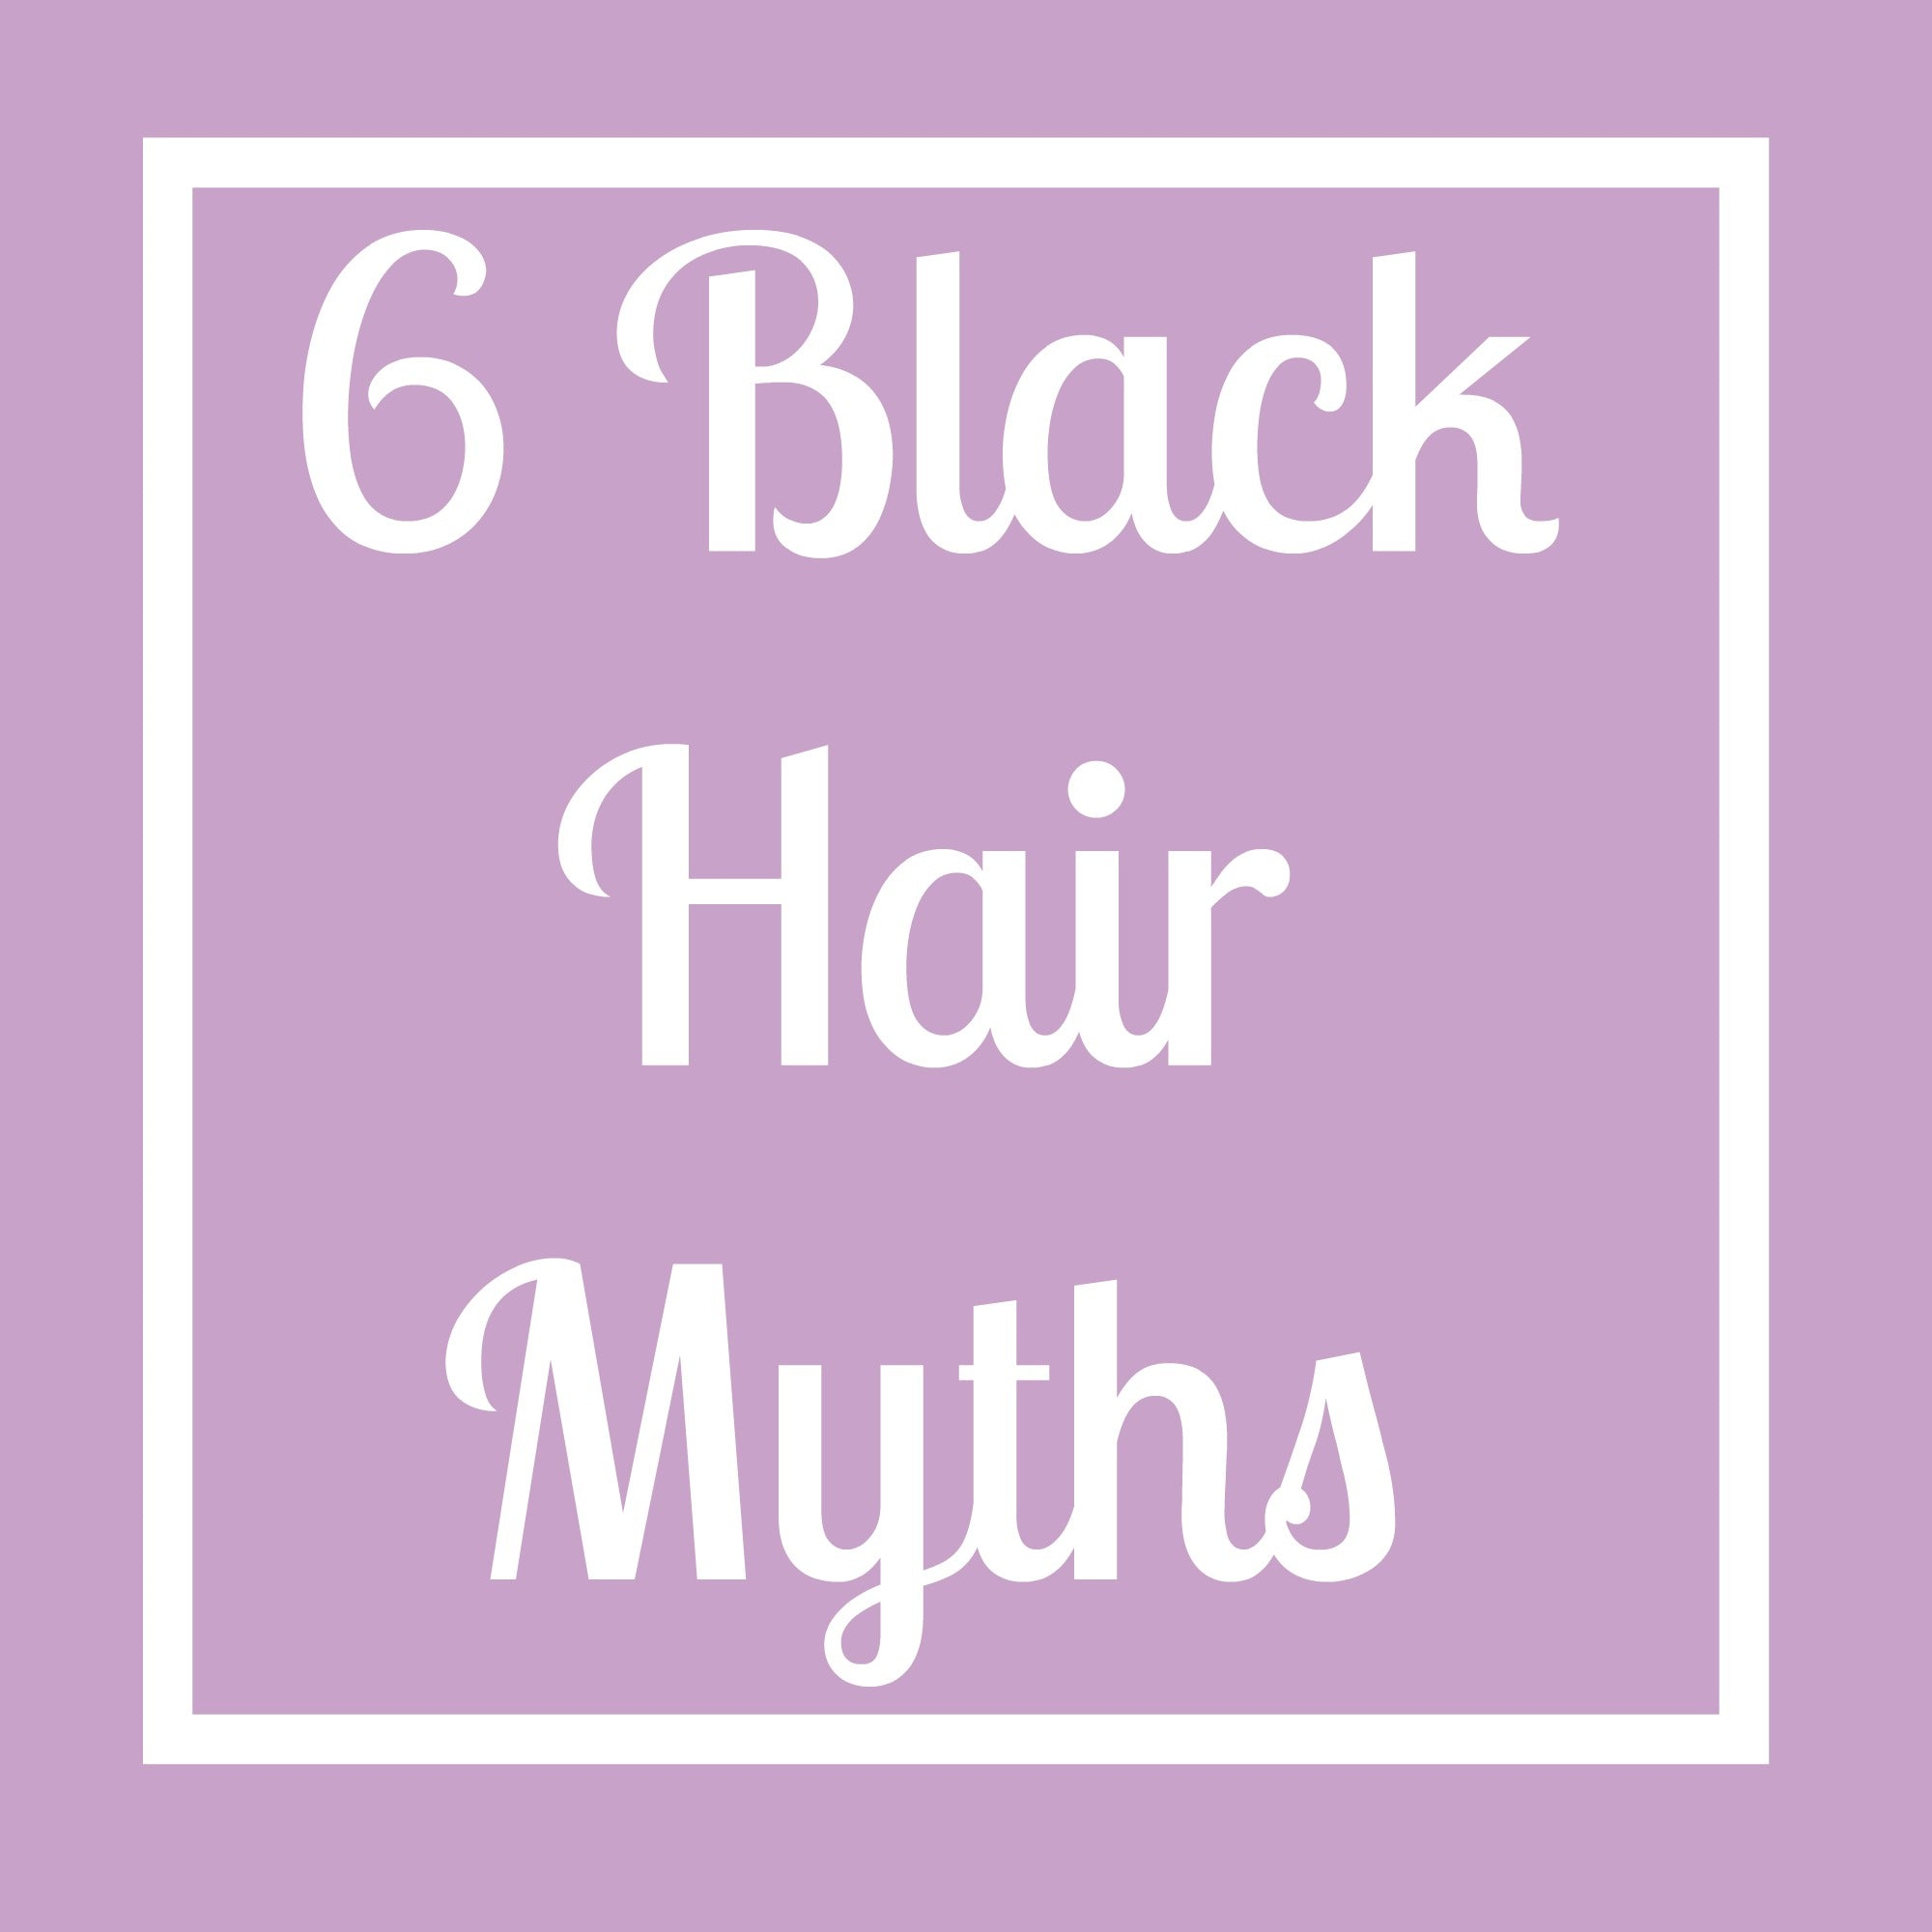 6 BLACK HAIR MYTHS